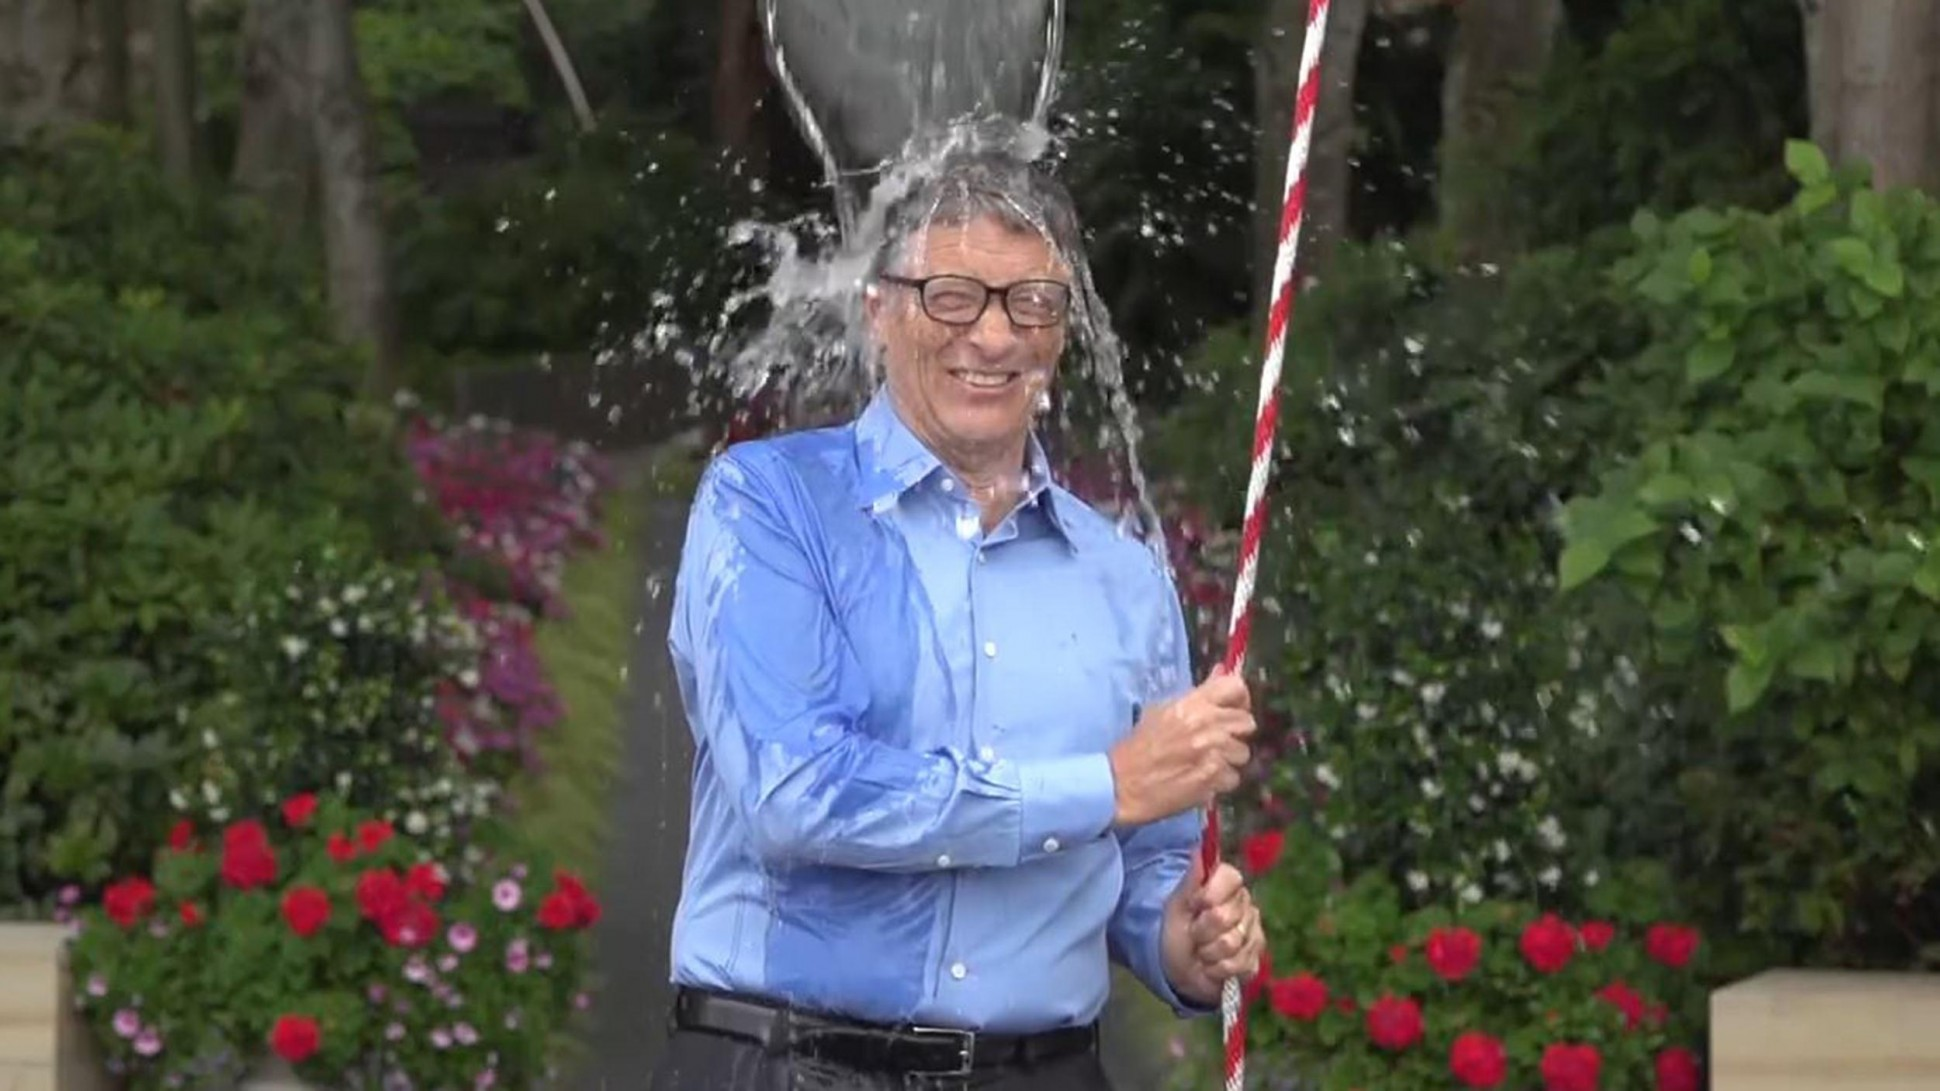 Here's where all that Ice Bucket Challenge money went